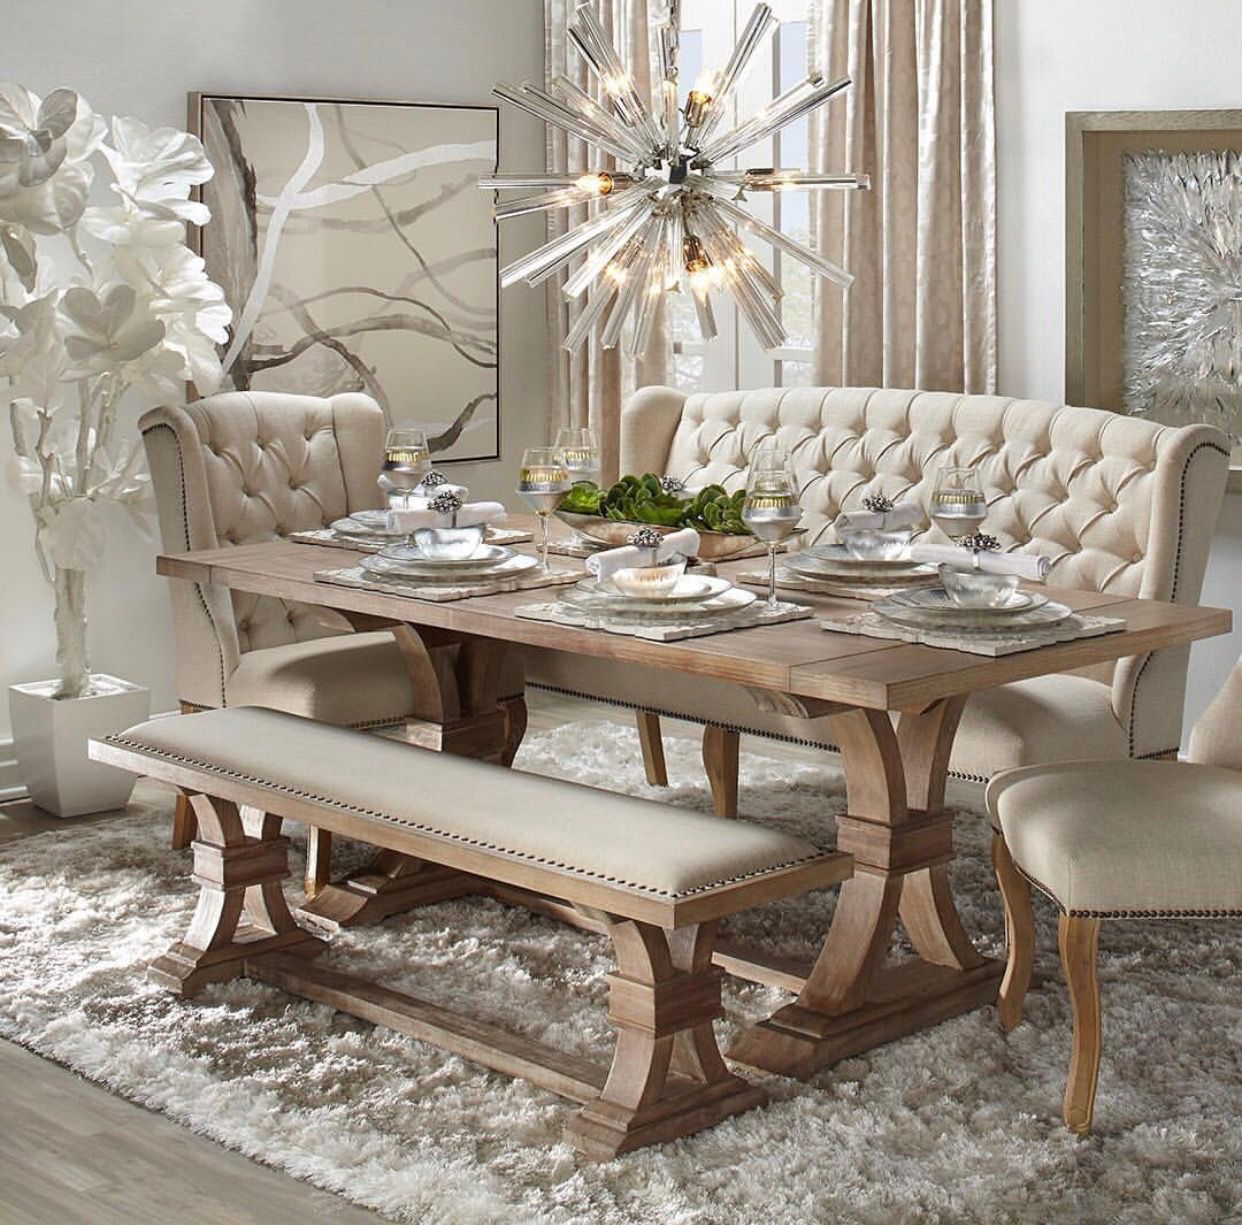 Pin By Simone Chance On New Kitchen With Images Dining Room Table Decor Shabby Chic Dining Room Dining Room Cozy